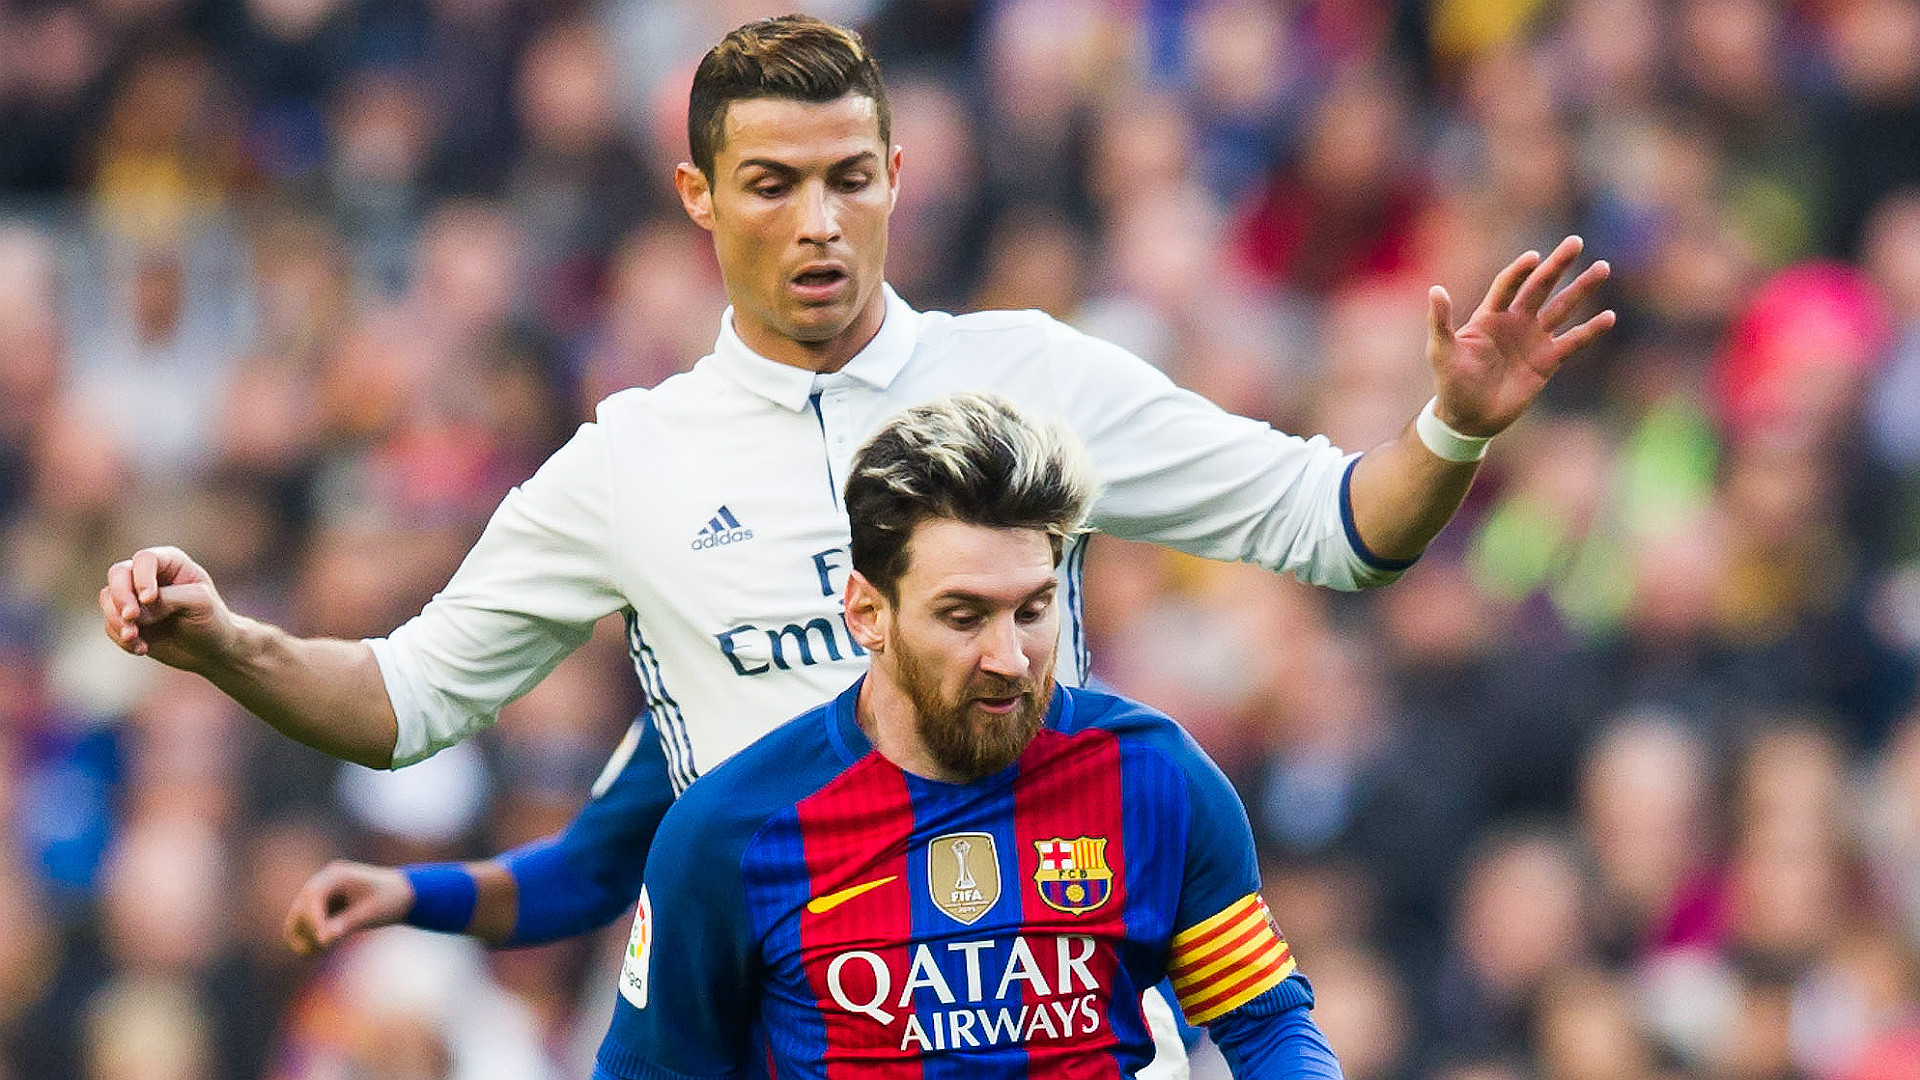 Messi and Ronaldo share adorable kiss ahead of Clasico in Barcelona street art